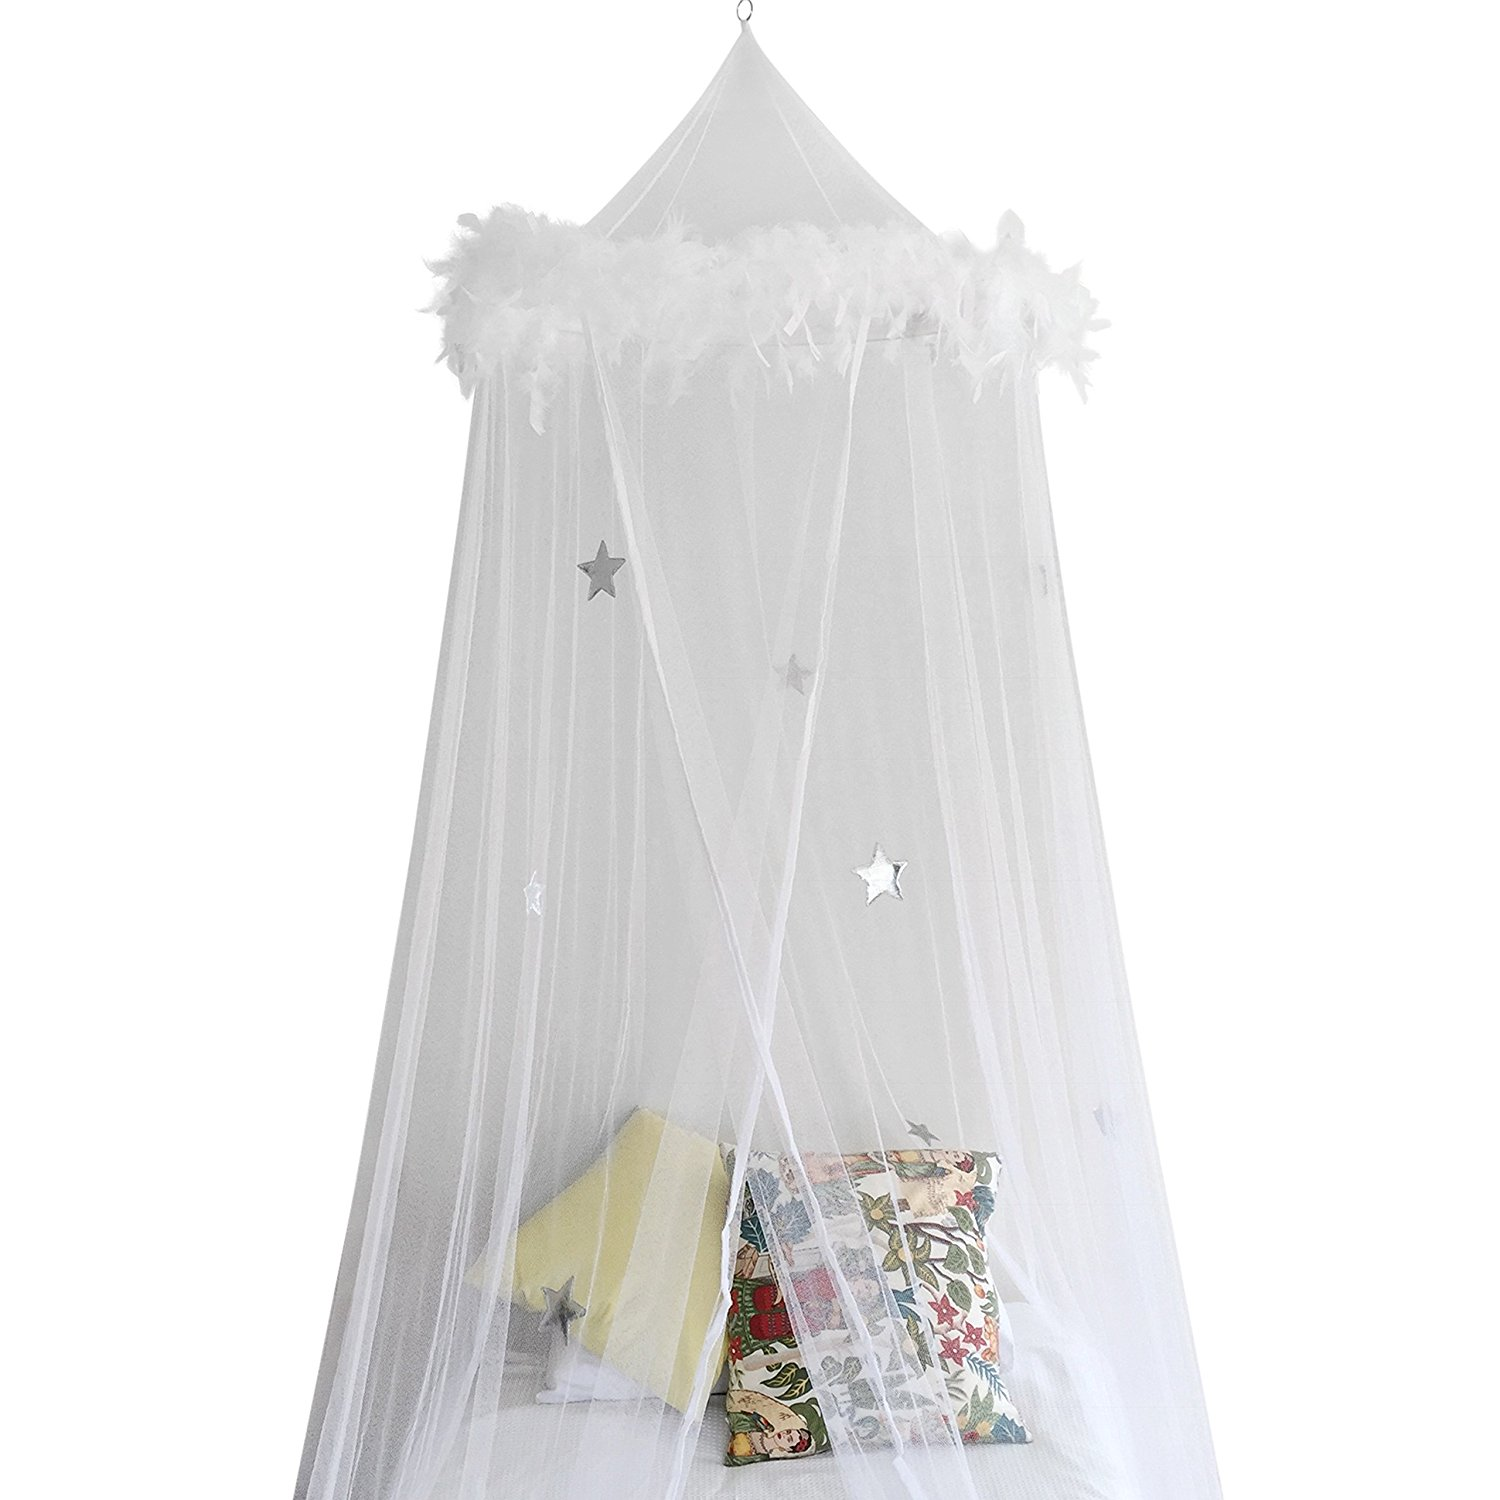 Bed Canopy Mosquito Net Curtains With Feathers And Stars Moski Net